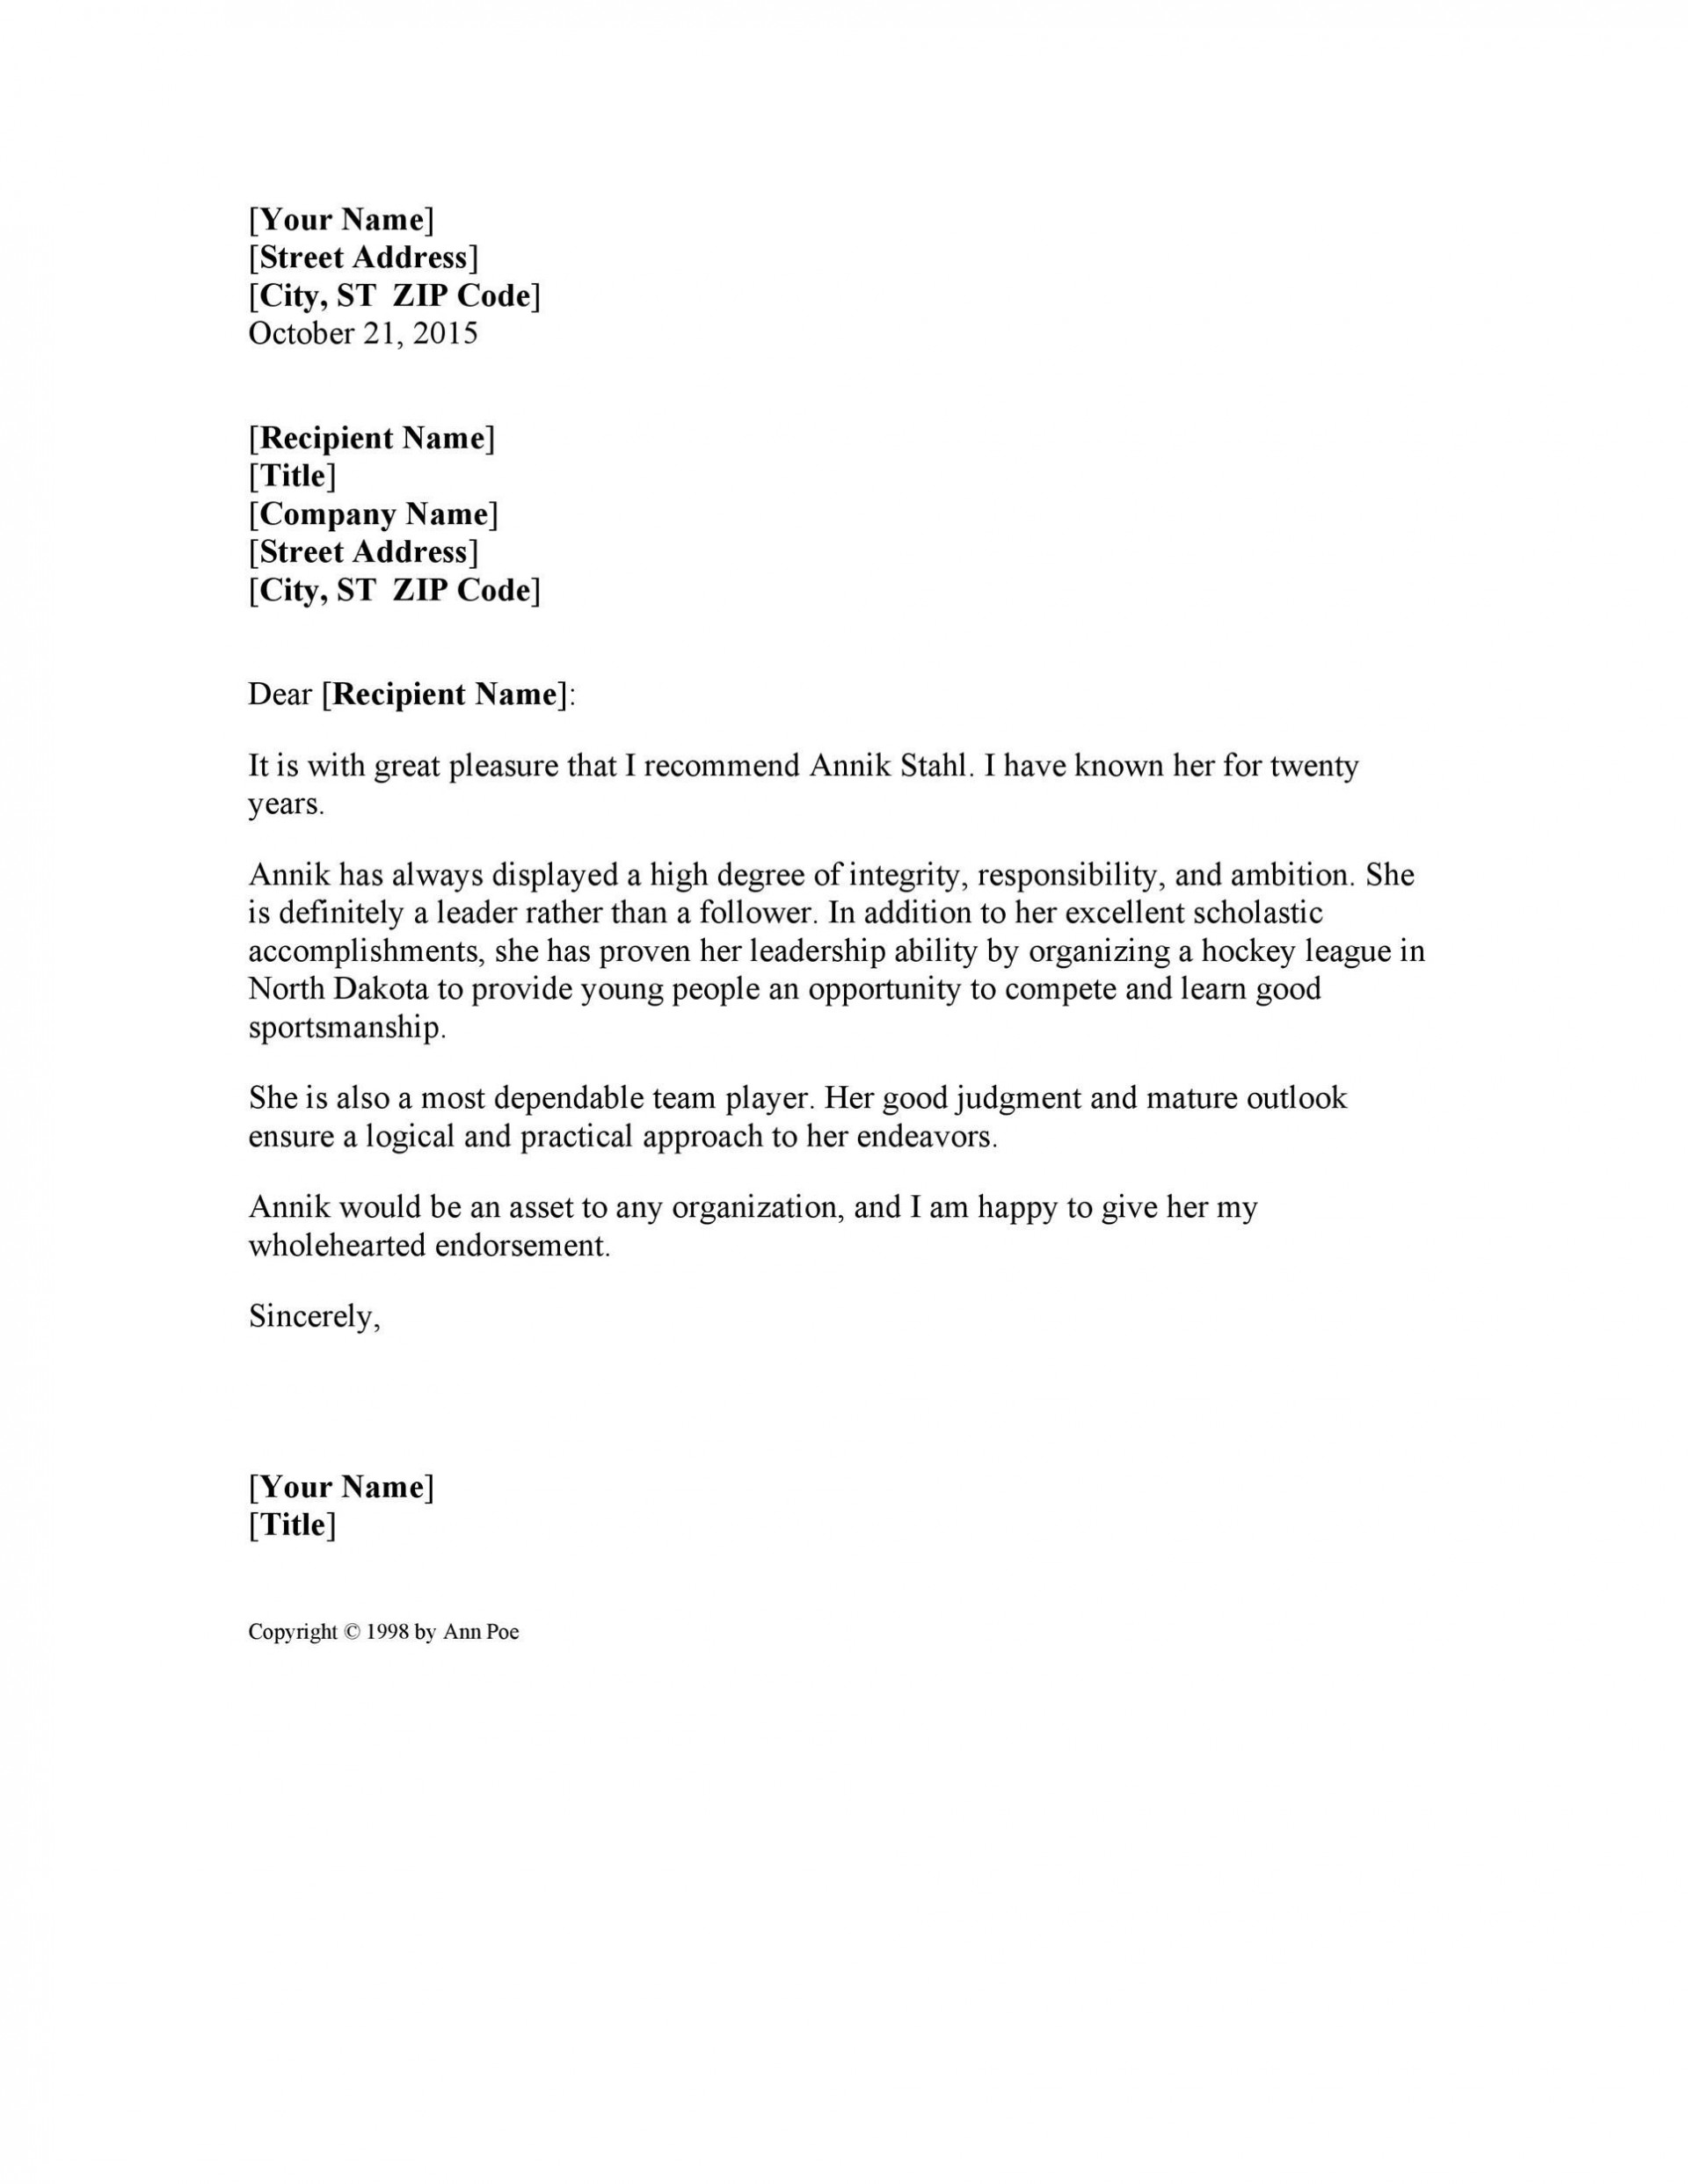 007 Shocking Personal Reference Letter Template Sample  Character Word For Rental Application1920